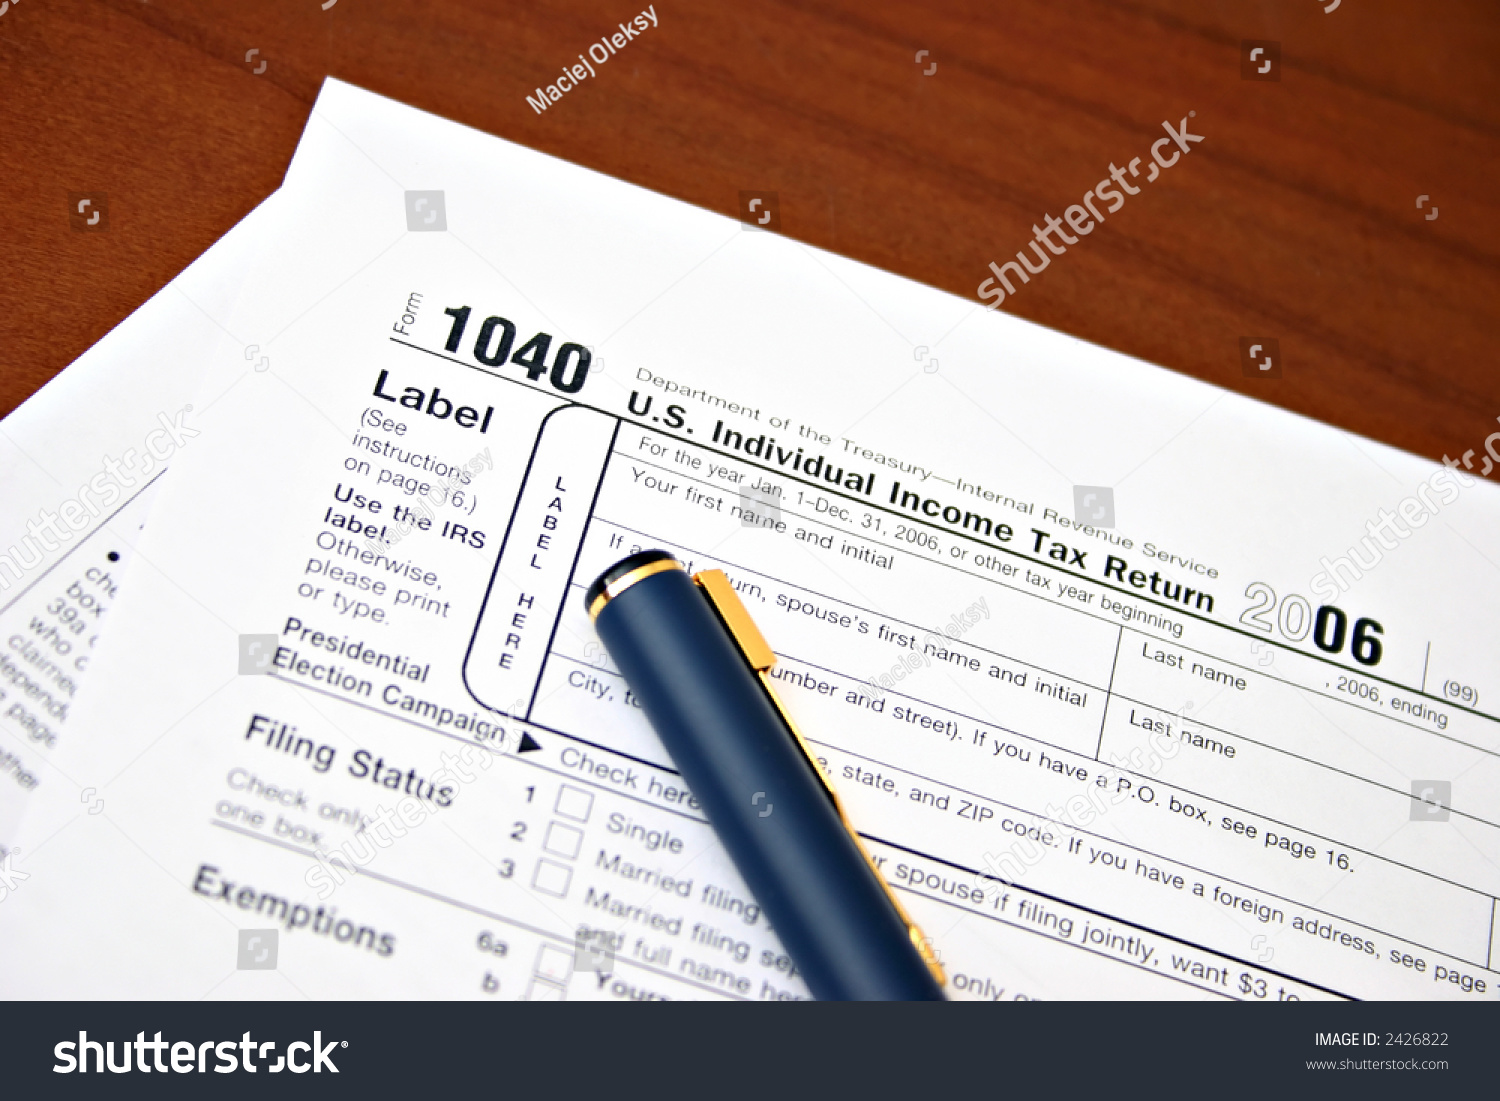 irs tax forms 1040 stock photo 2426822